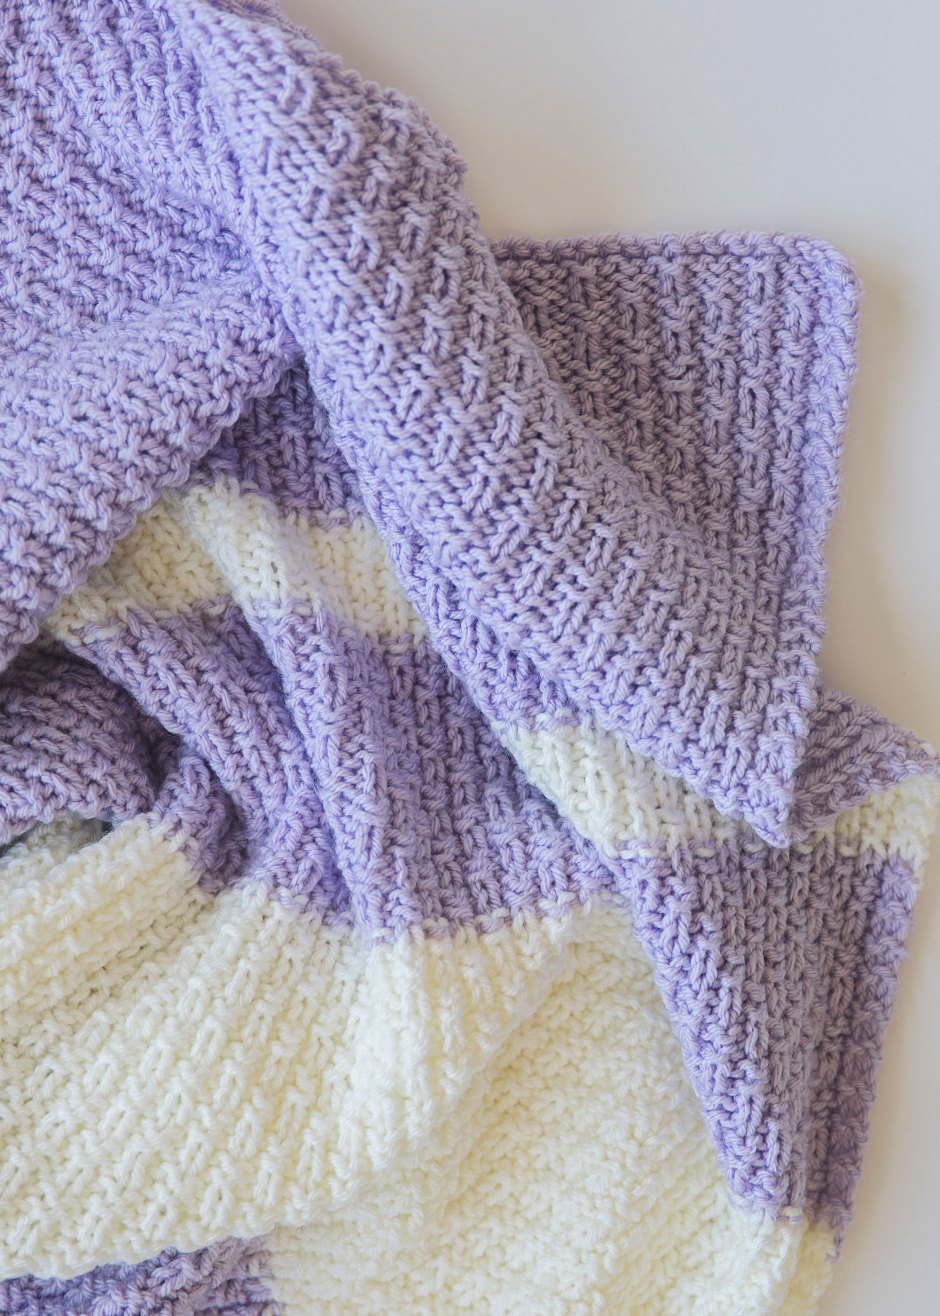 Knitting Crochet Patterns Baby Blankets : Easy Knit Baby Blanket Pattern - Leelee KnitsLeelee Knits